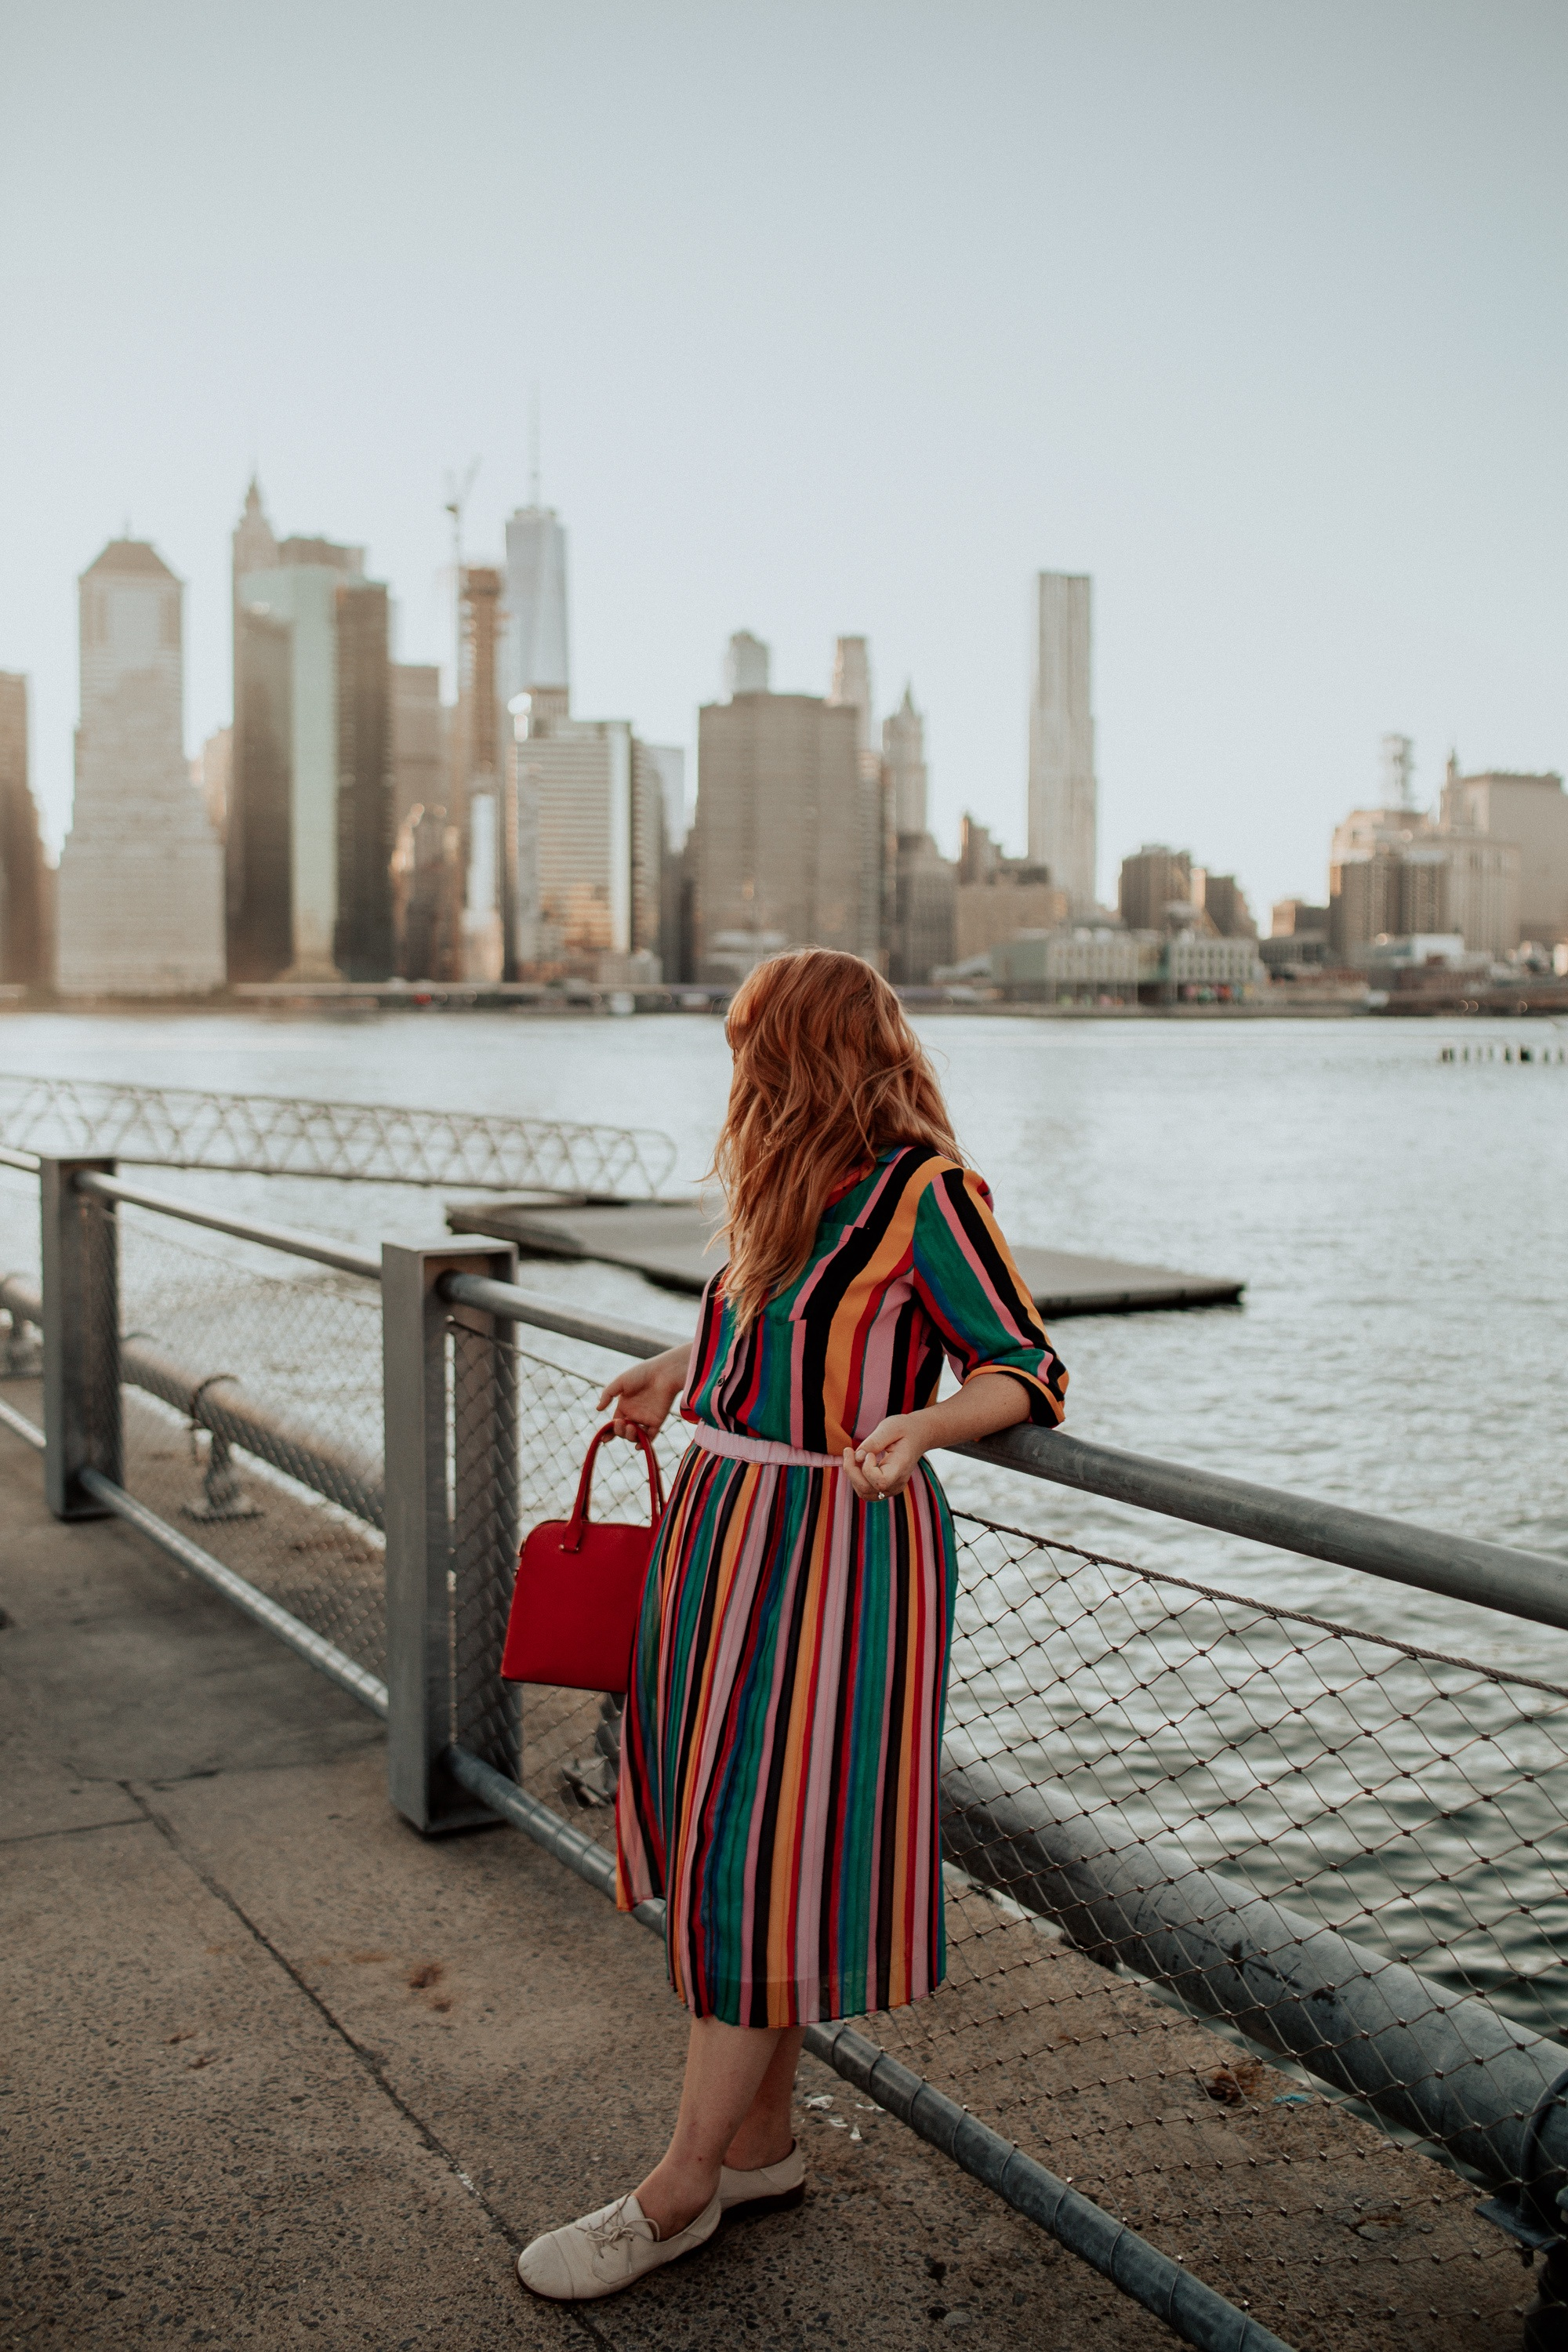 Woman in a Rainbow outfit looking at Manhattan from across the Hudson River.